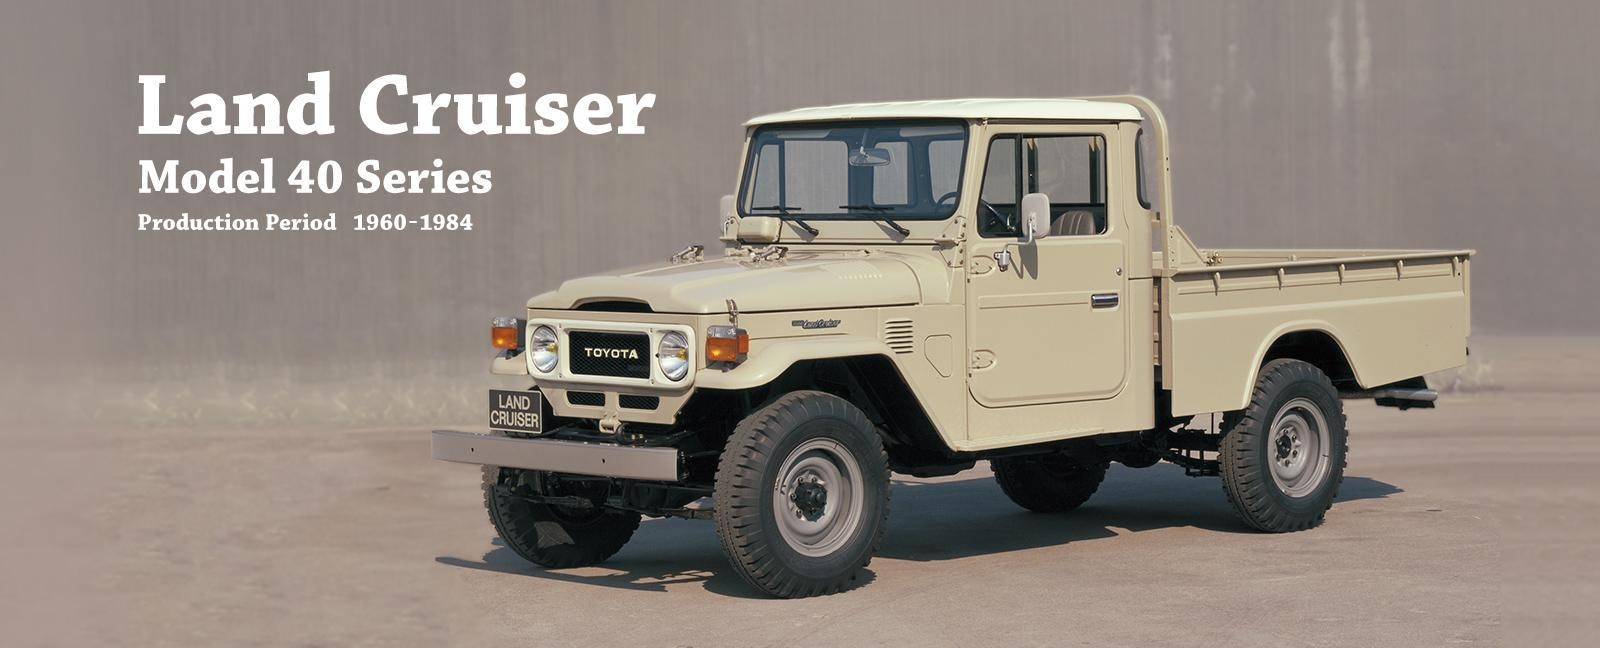 Perfect Business for Land Cruiser Enthusiasts (For sale by MBS)